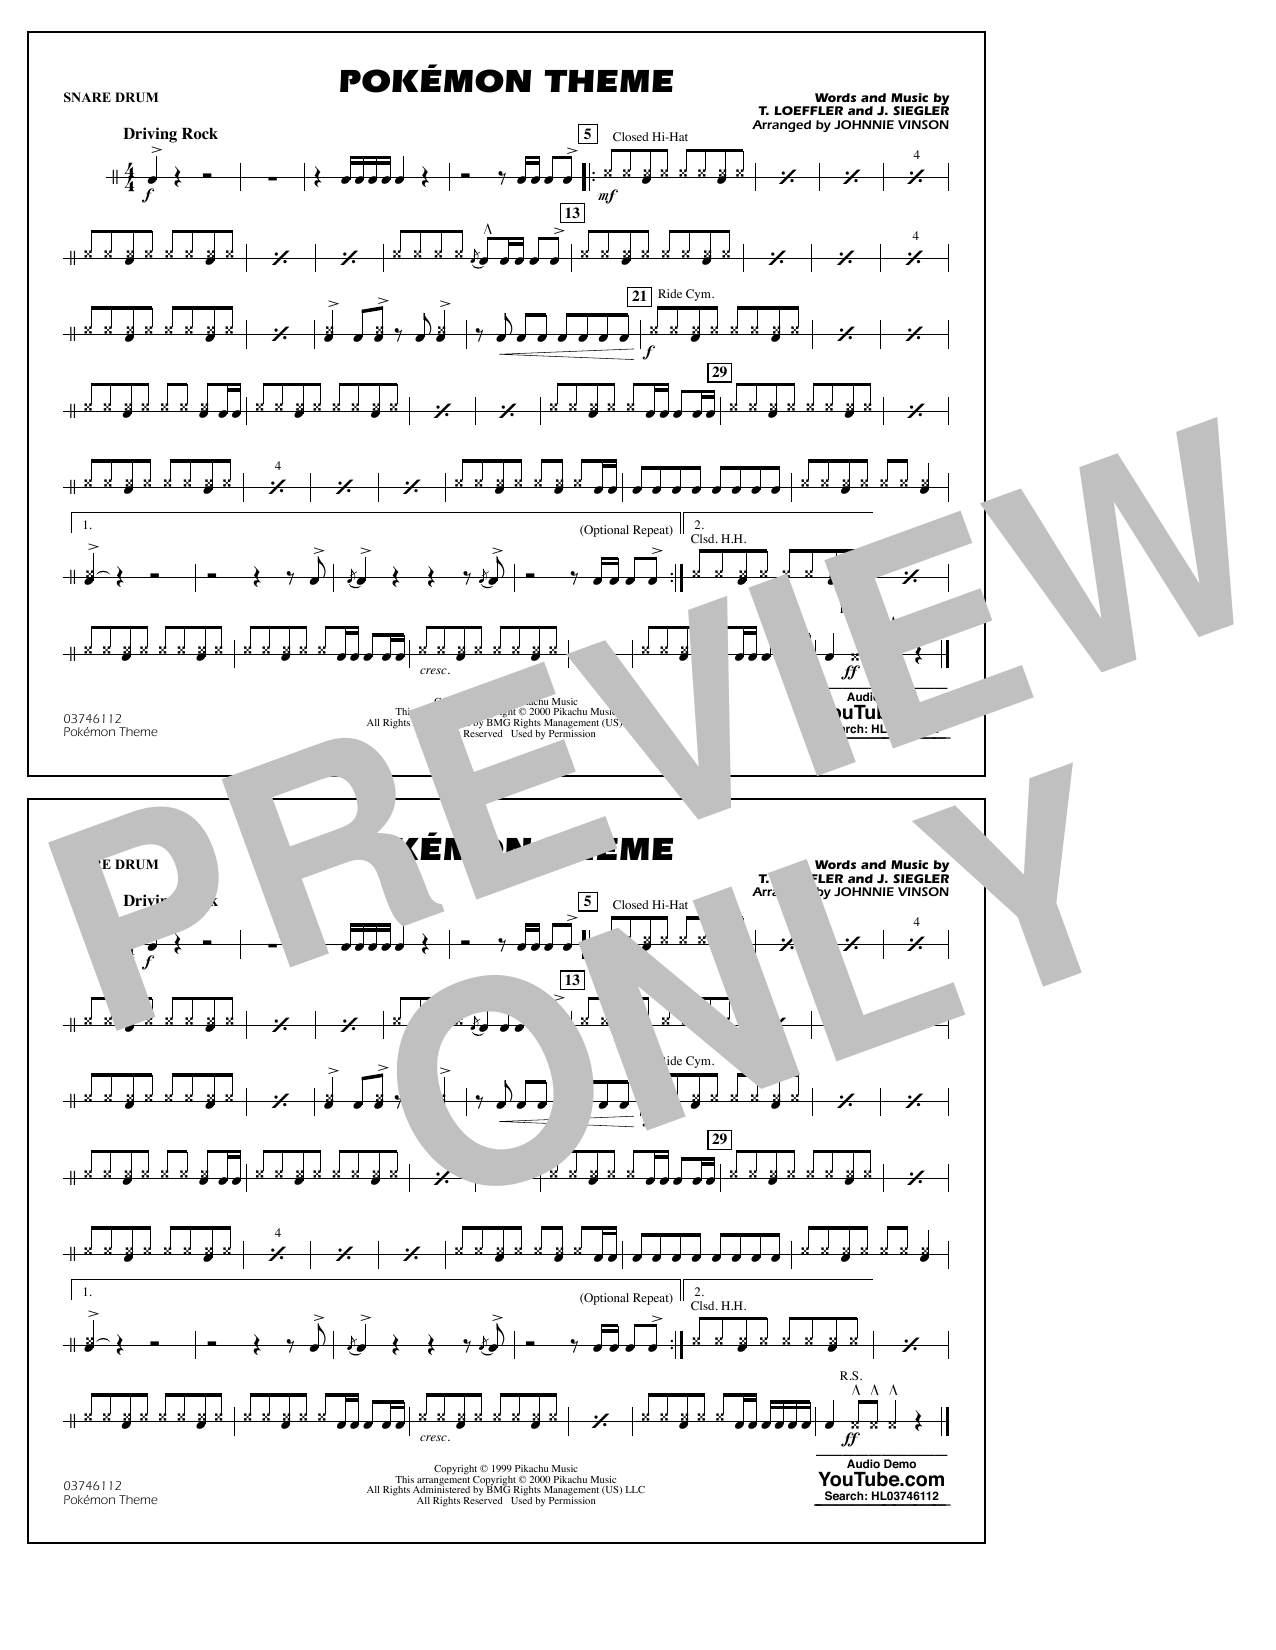 Pokémon Theme - Snare Drum Sheet Music